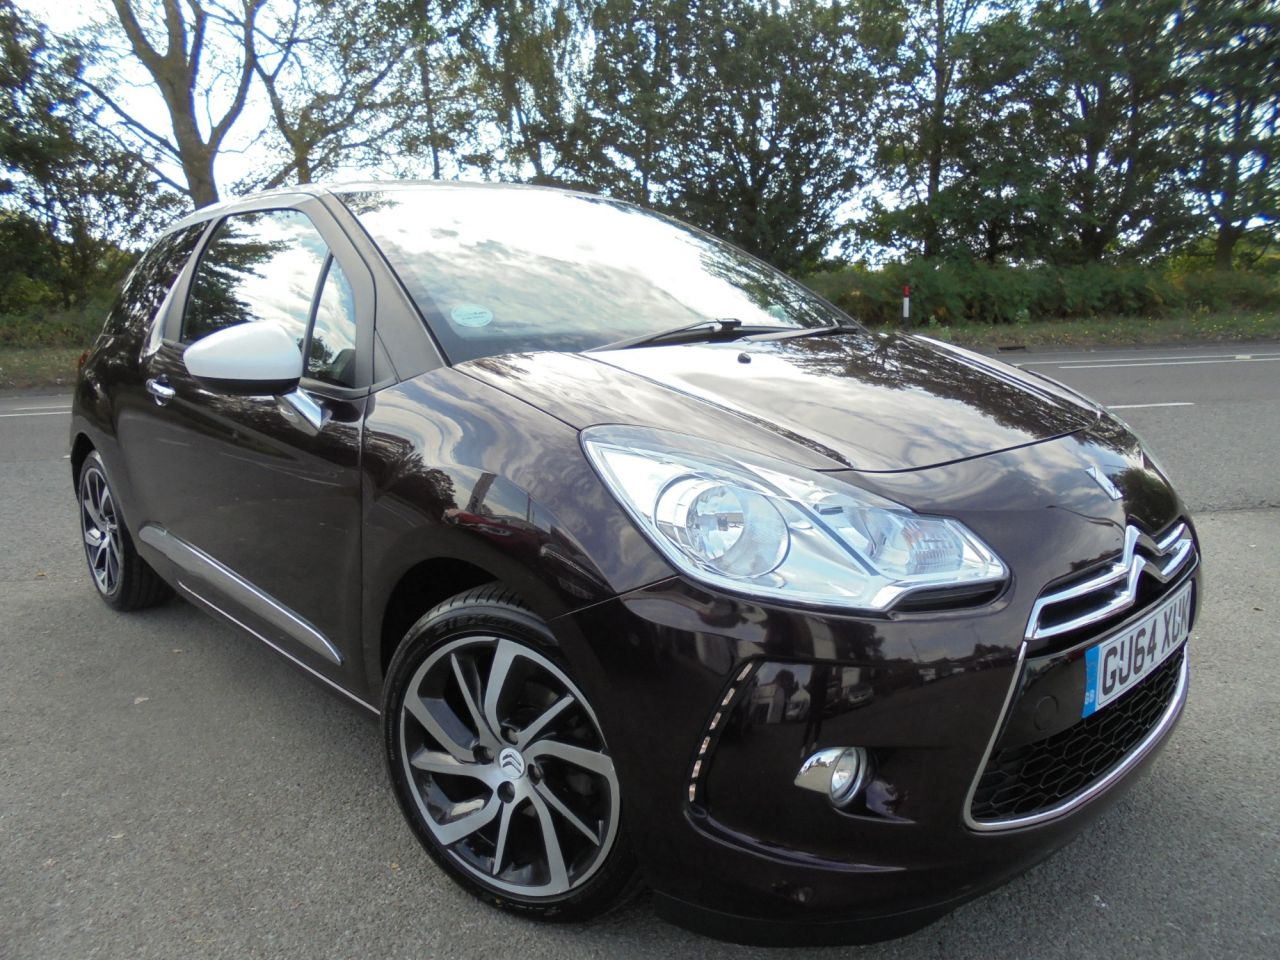 Selecta Auto Body >> 2014 Citroen Ds3 Dstyle Plus £6,495